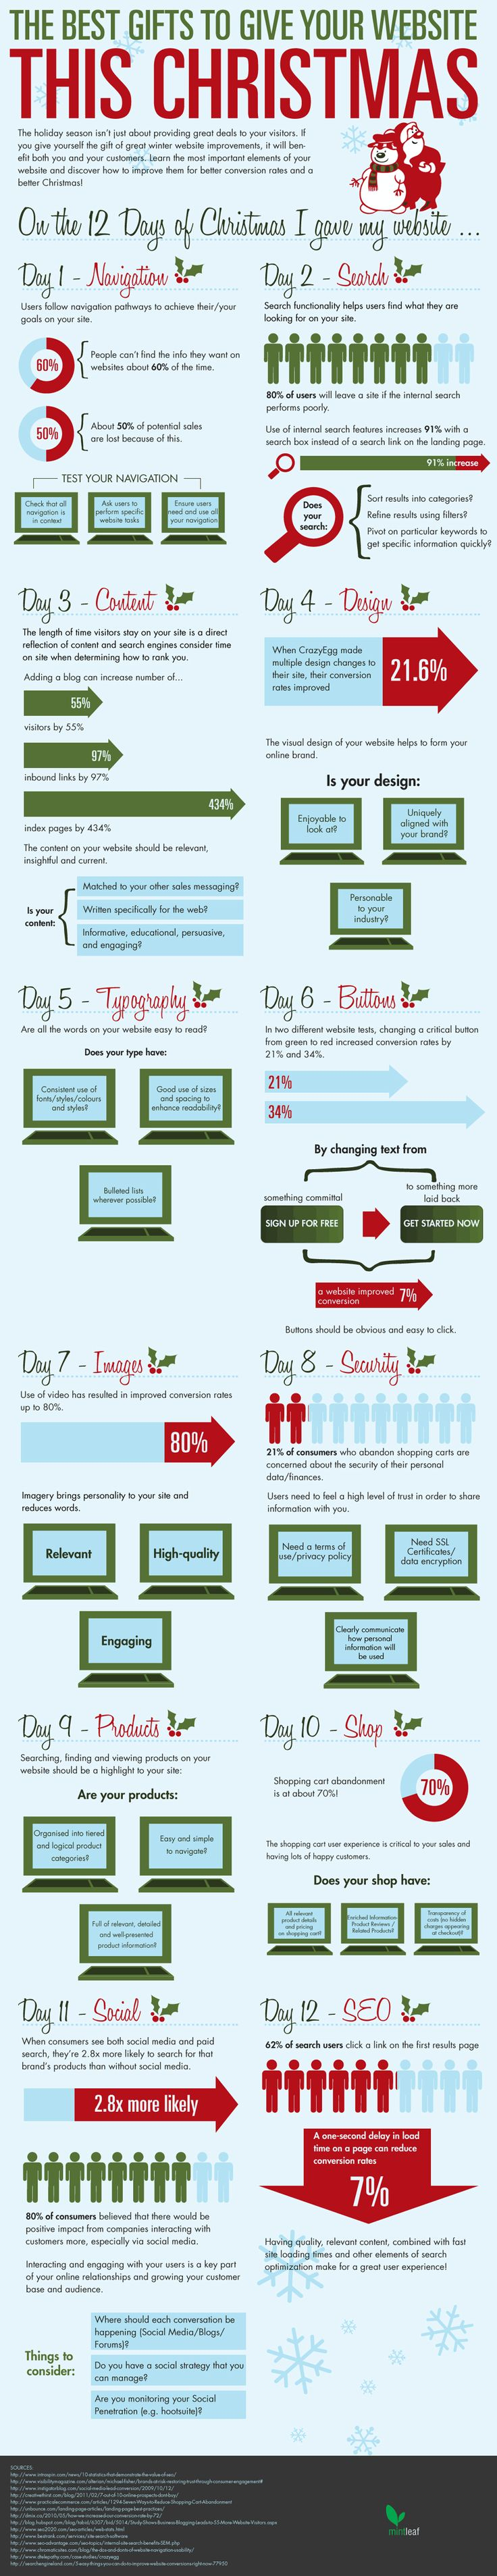 Best Social Media Infographics (Best Christmas gifts for your website?)